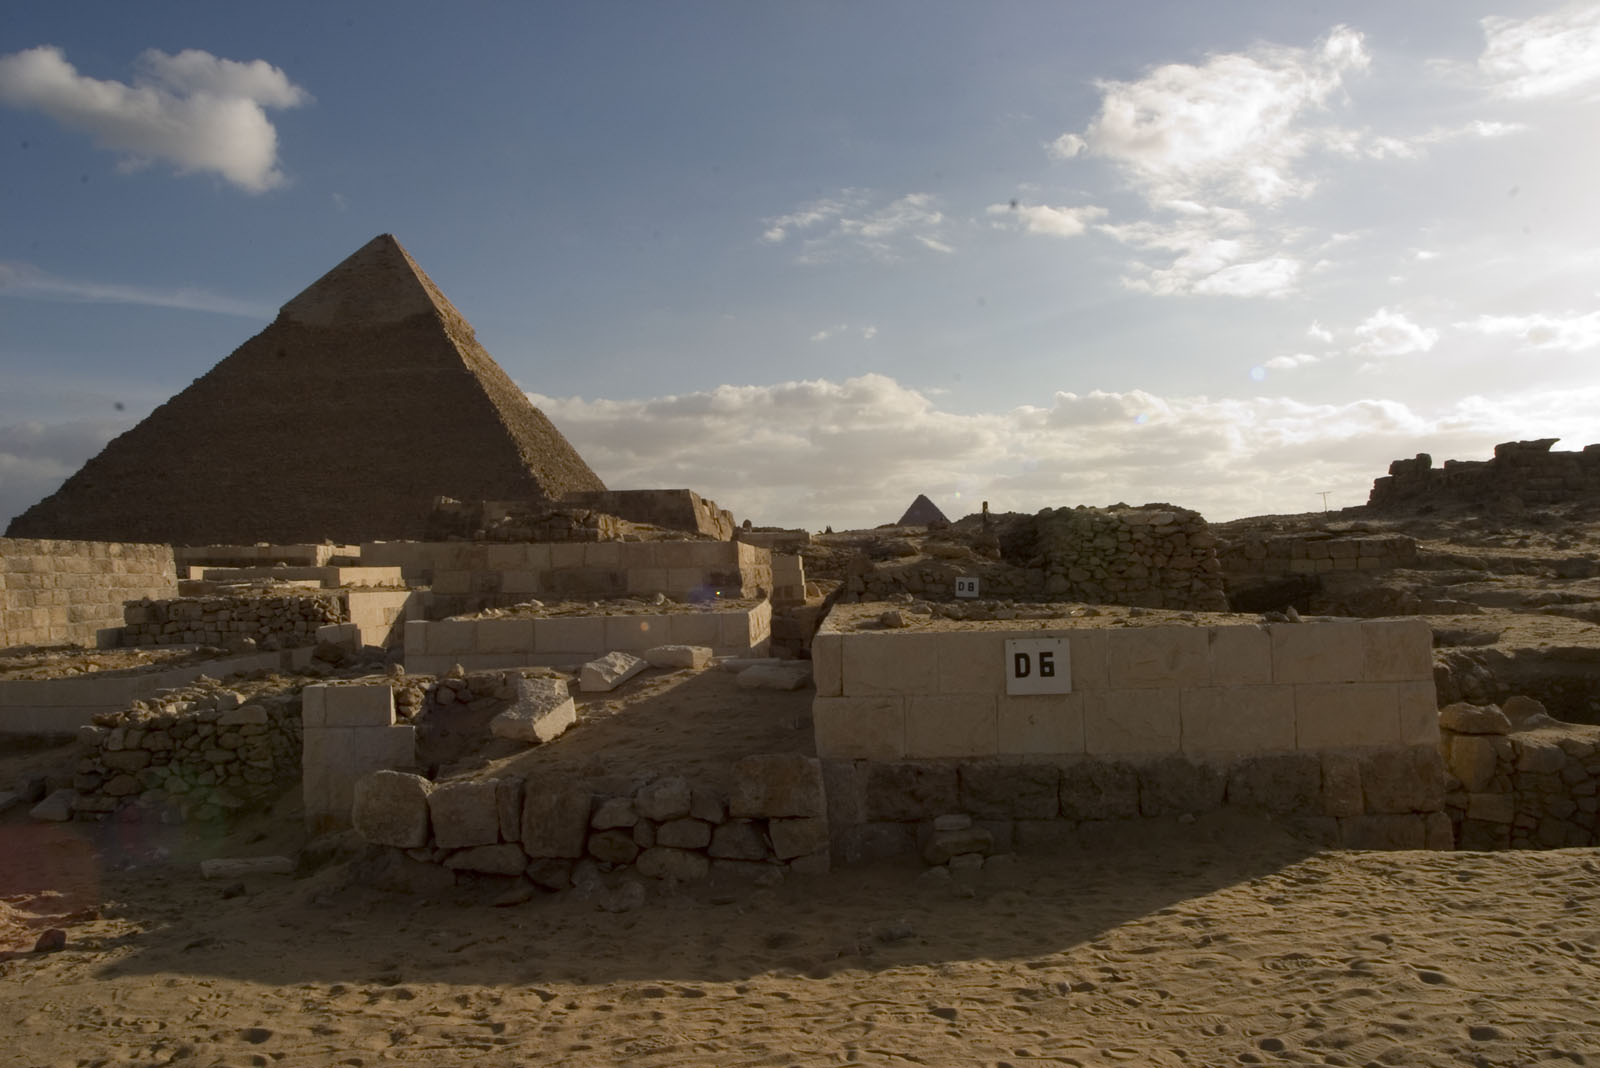 Western Cemetery: Site: Giza; View: D 6, D 8